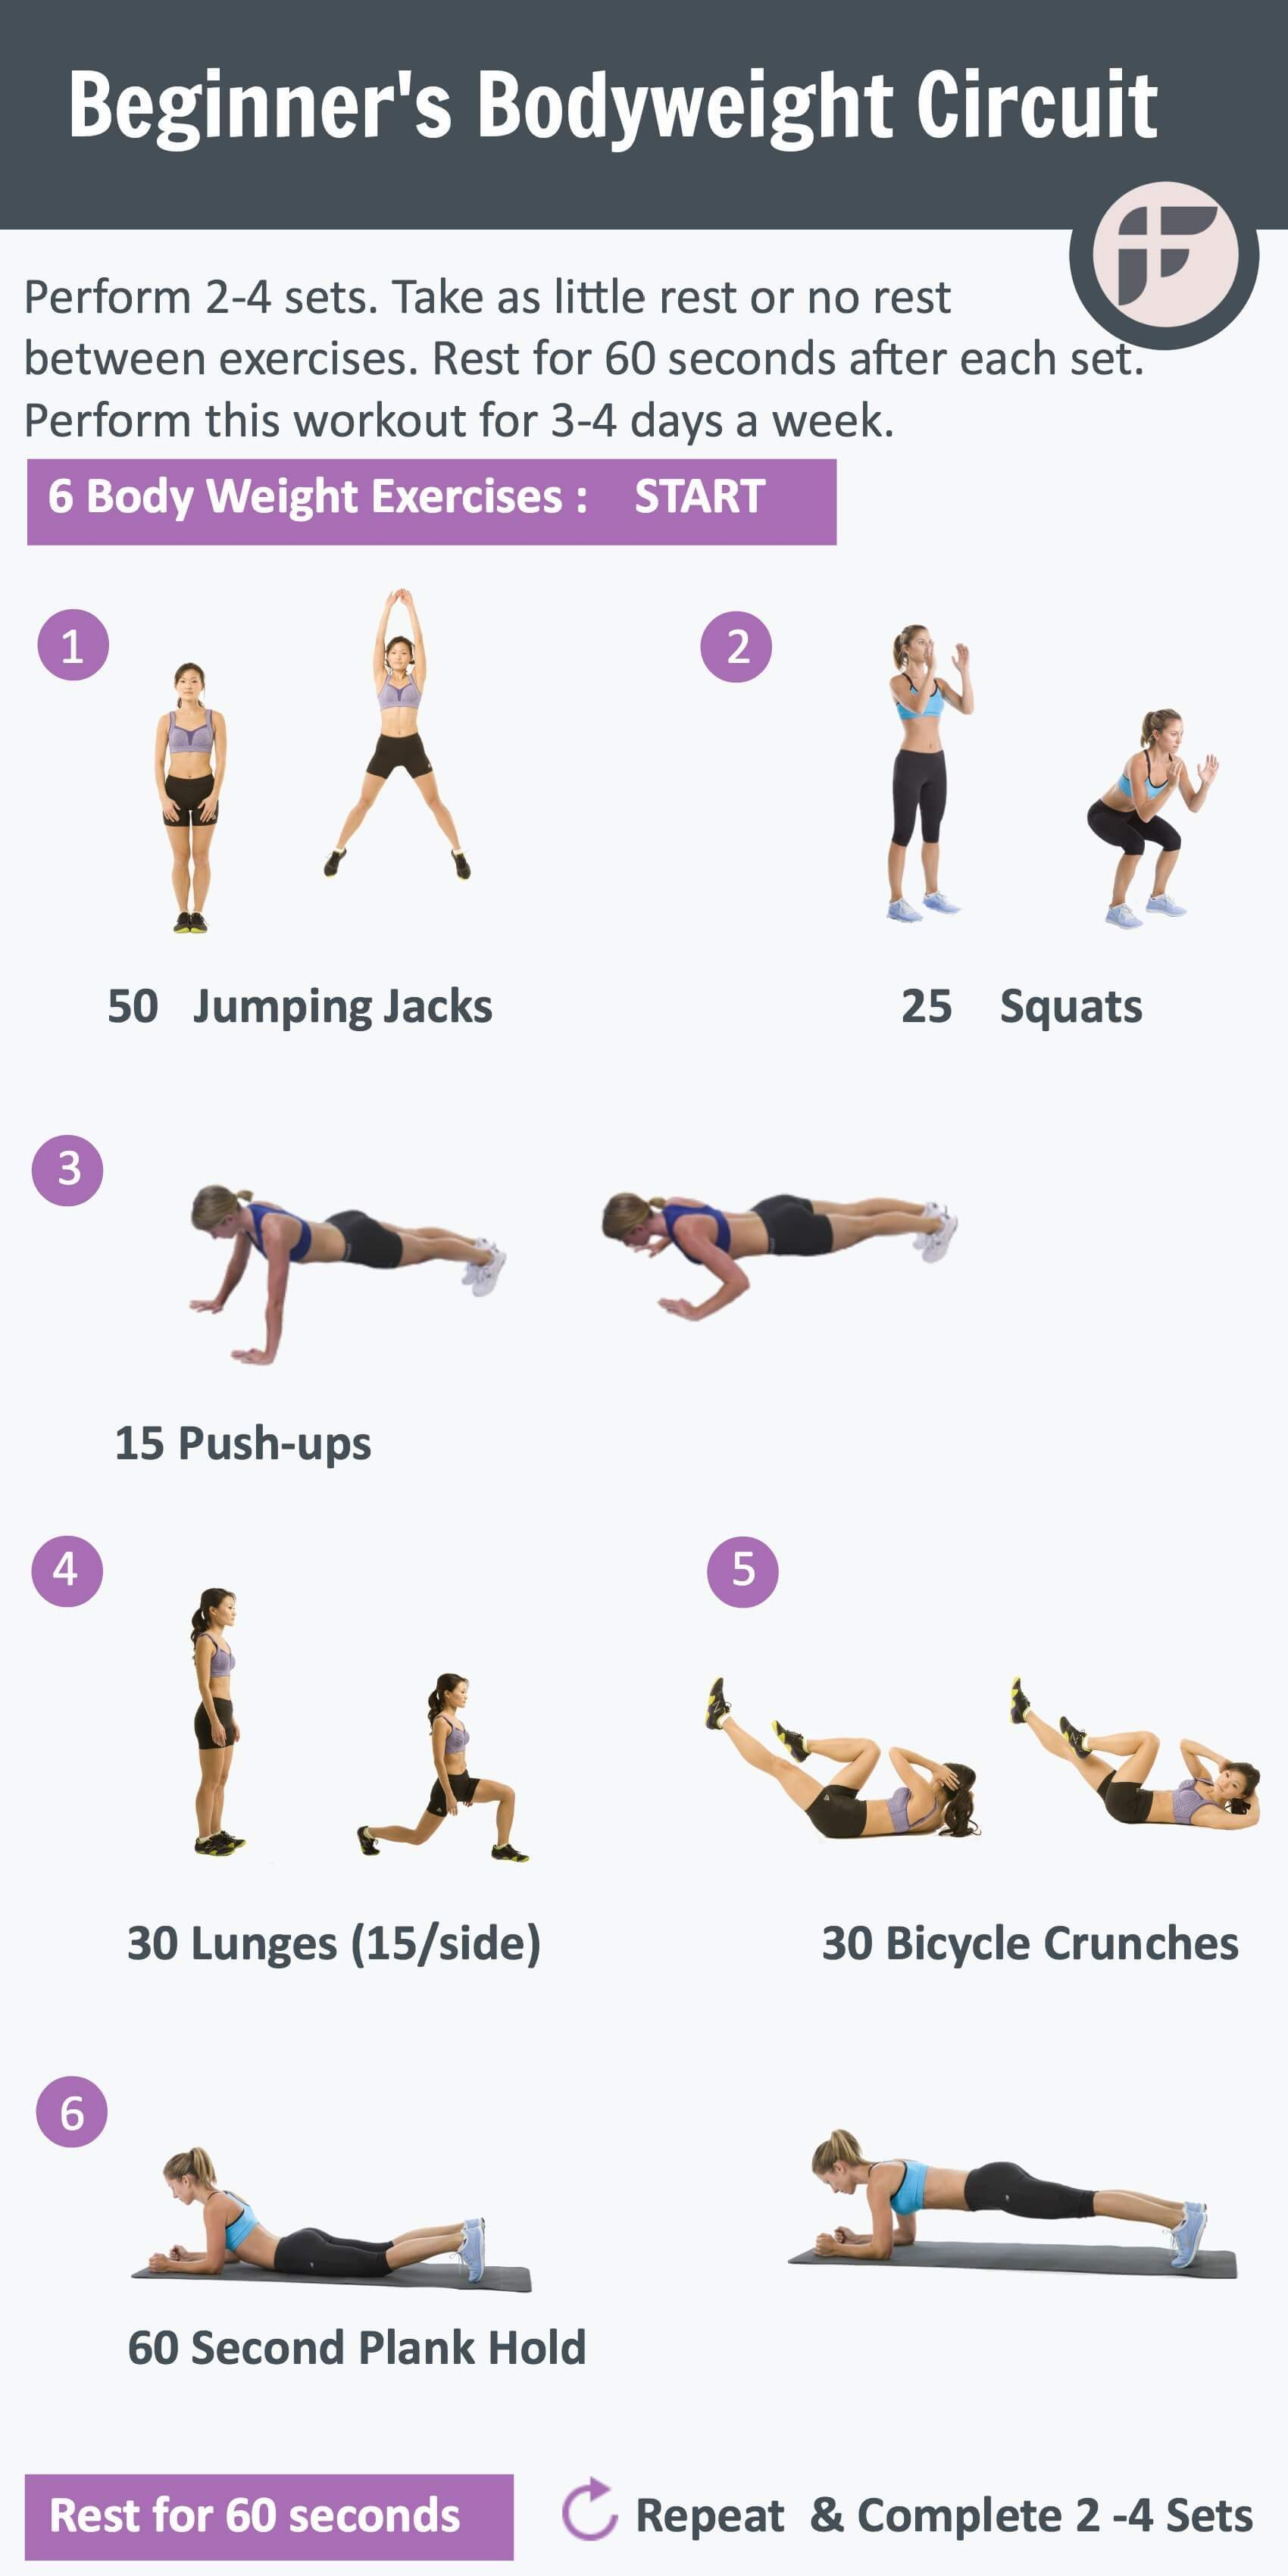 8 Reasons You Could Benefit from Bodyweight Training ...